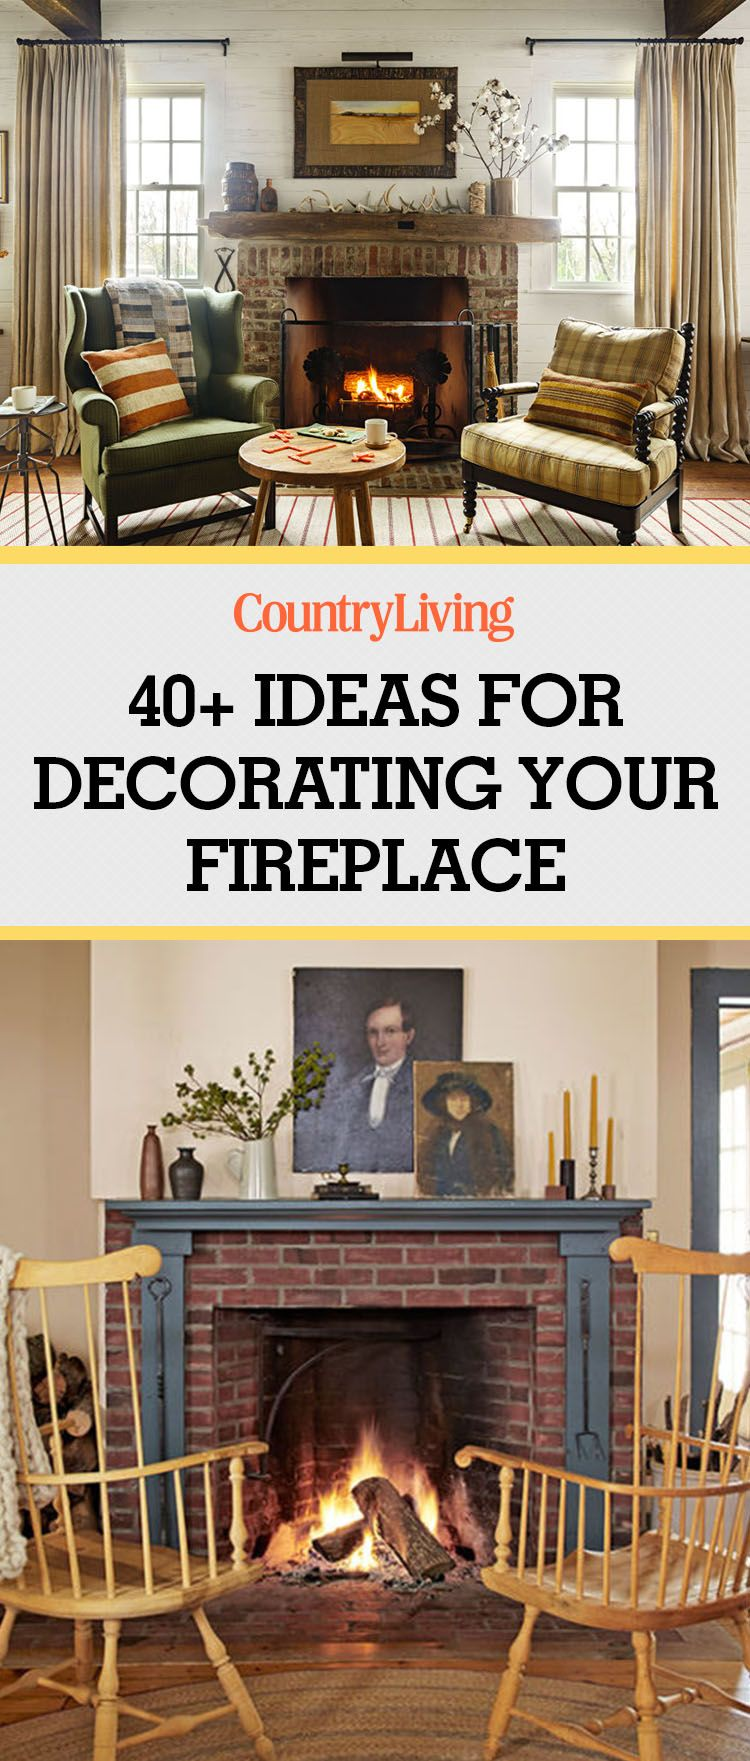 https://hips.hearstapps.com/clv.h-cdn.co/assets/17/10/1488910924-fireplace-decorating.jpg